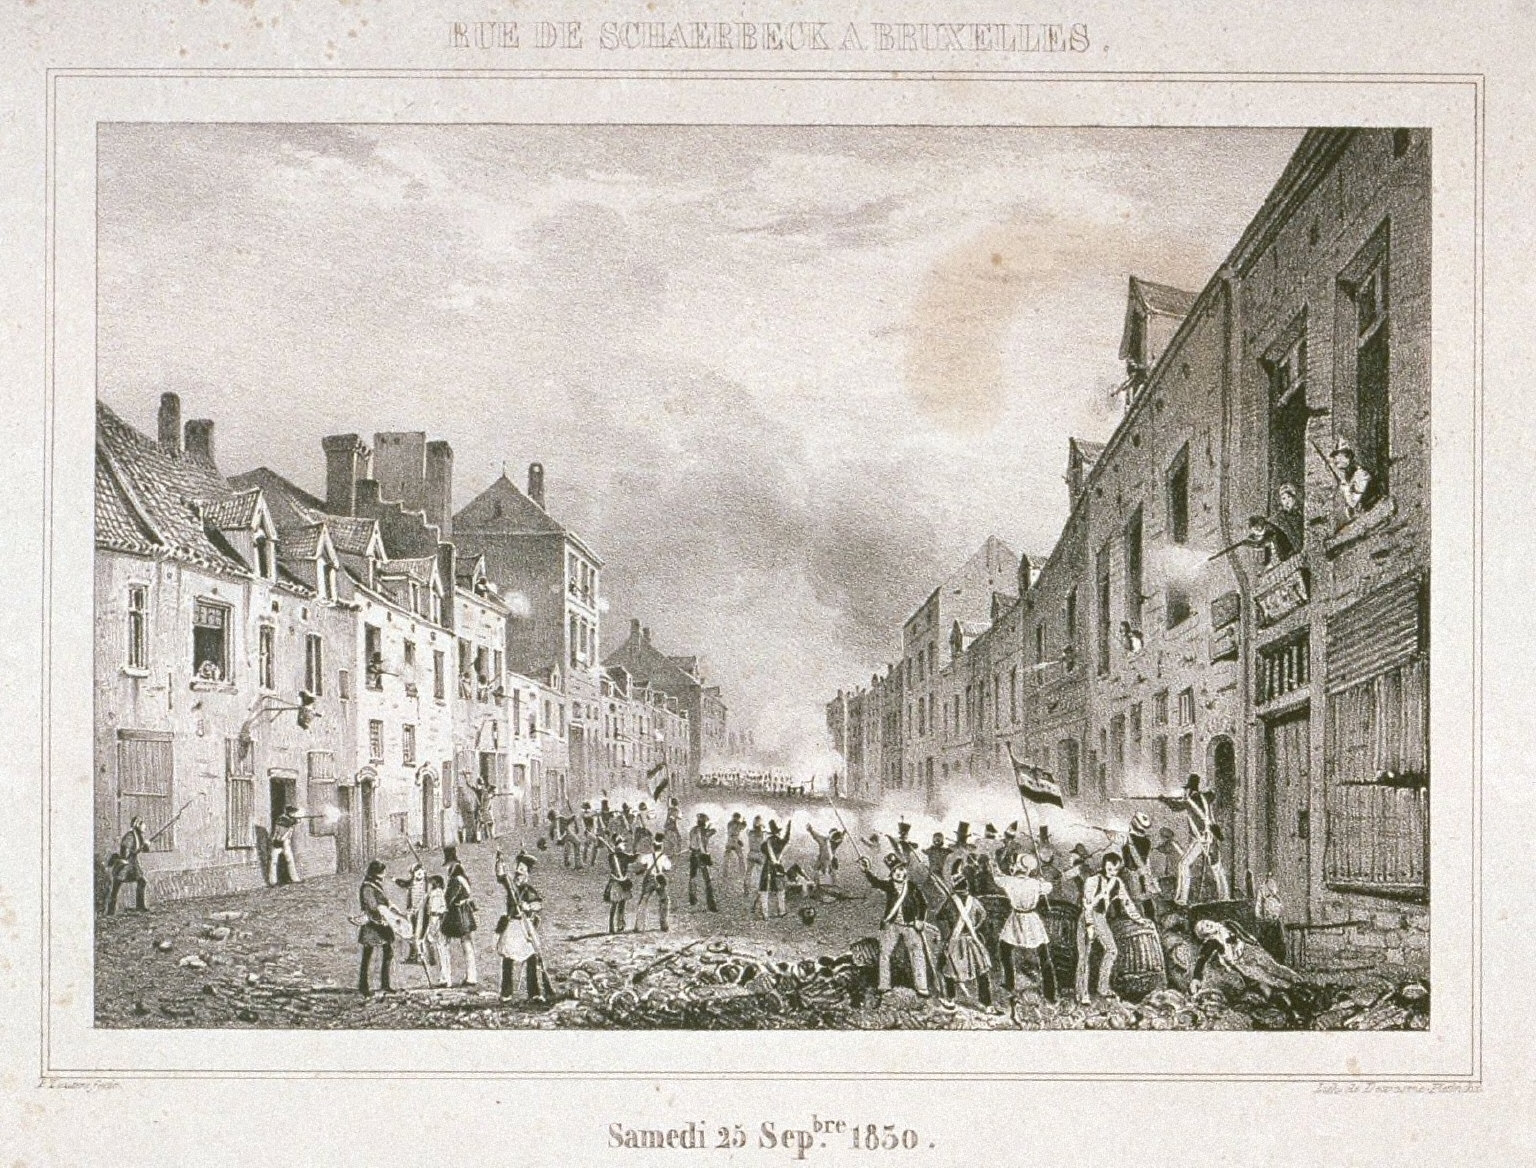 One of four scenes of 1830 revolution in Brussels